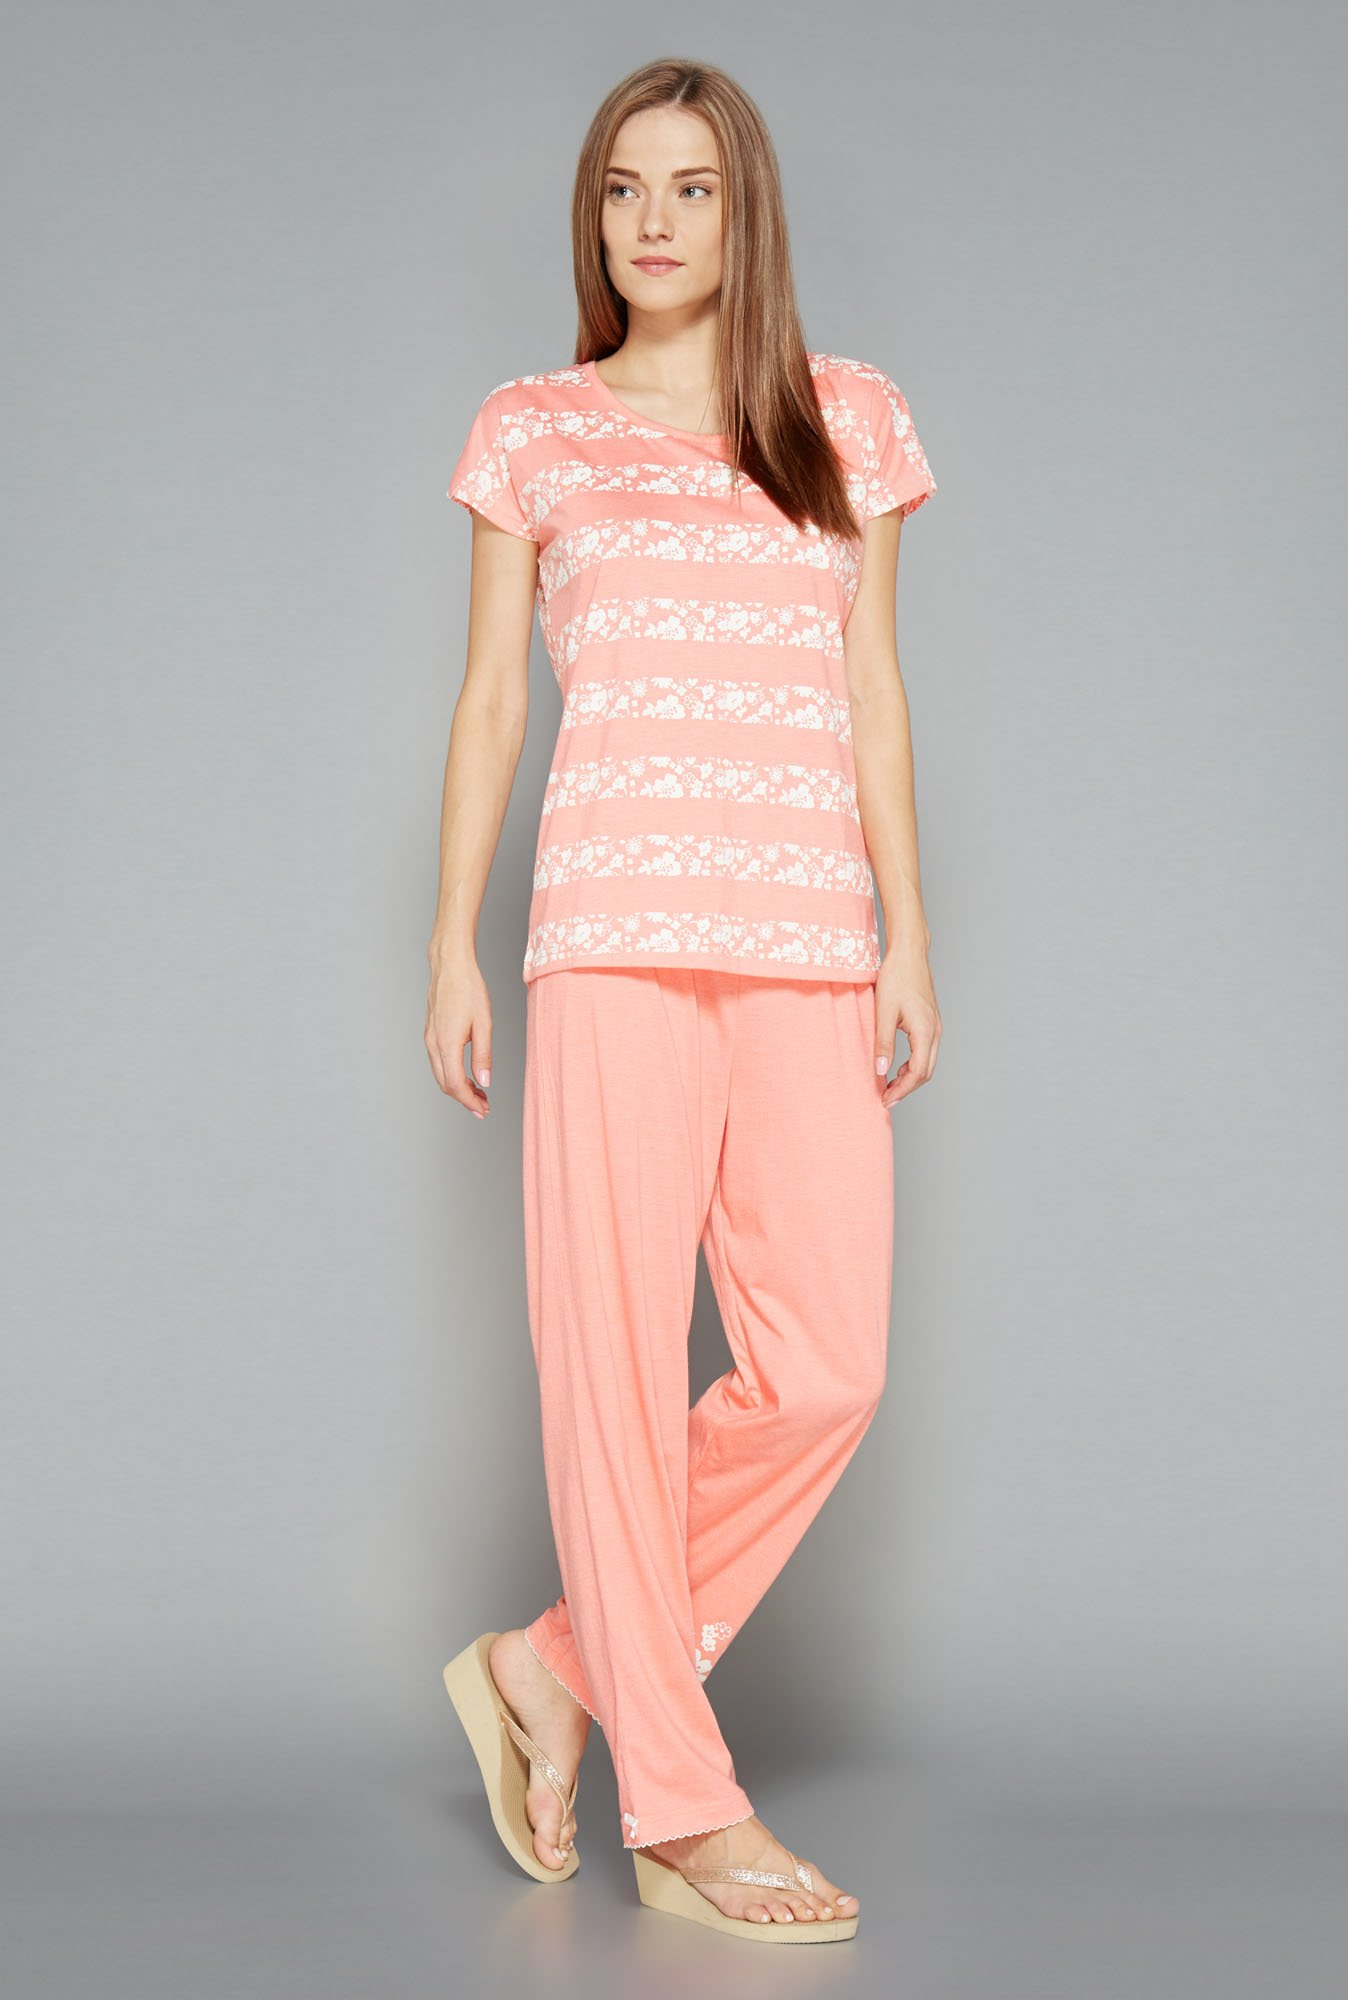 Intima Orange Printed Pyjama Set